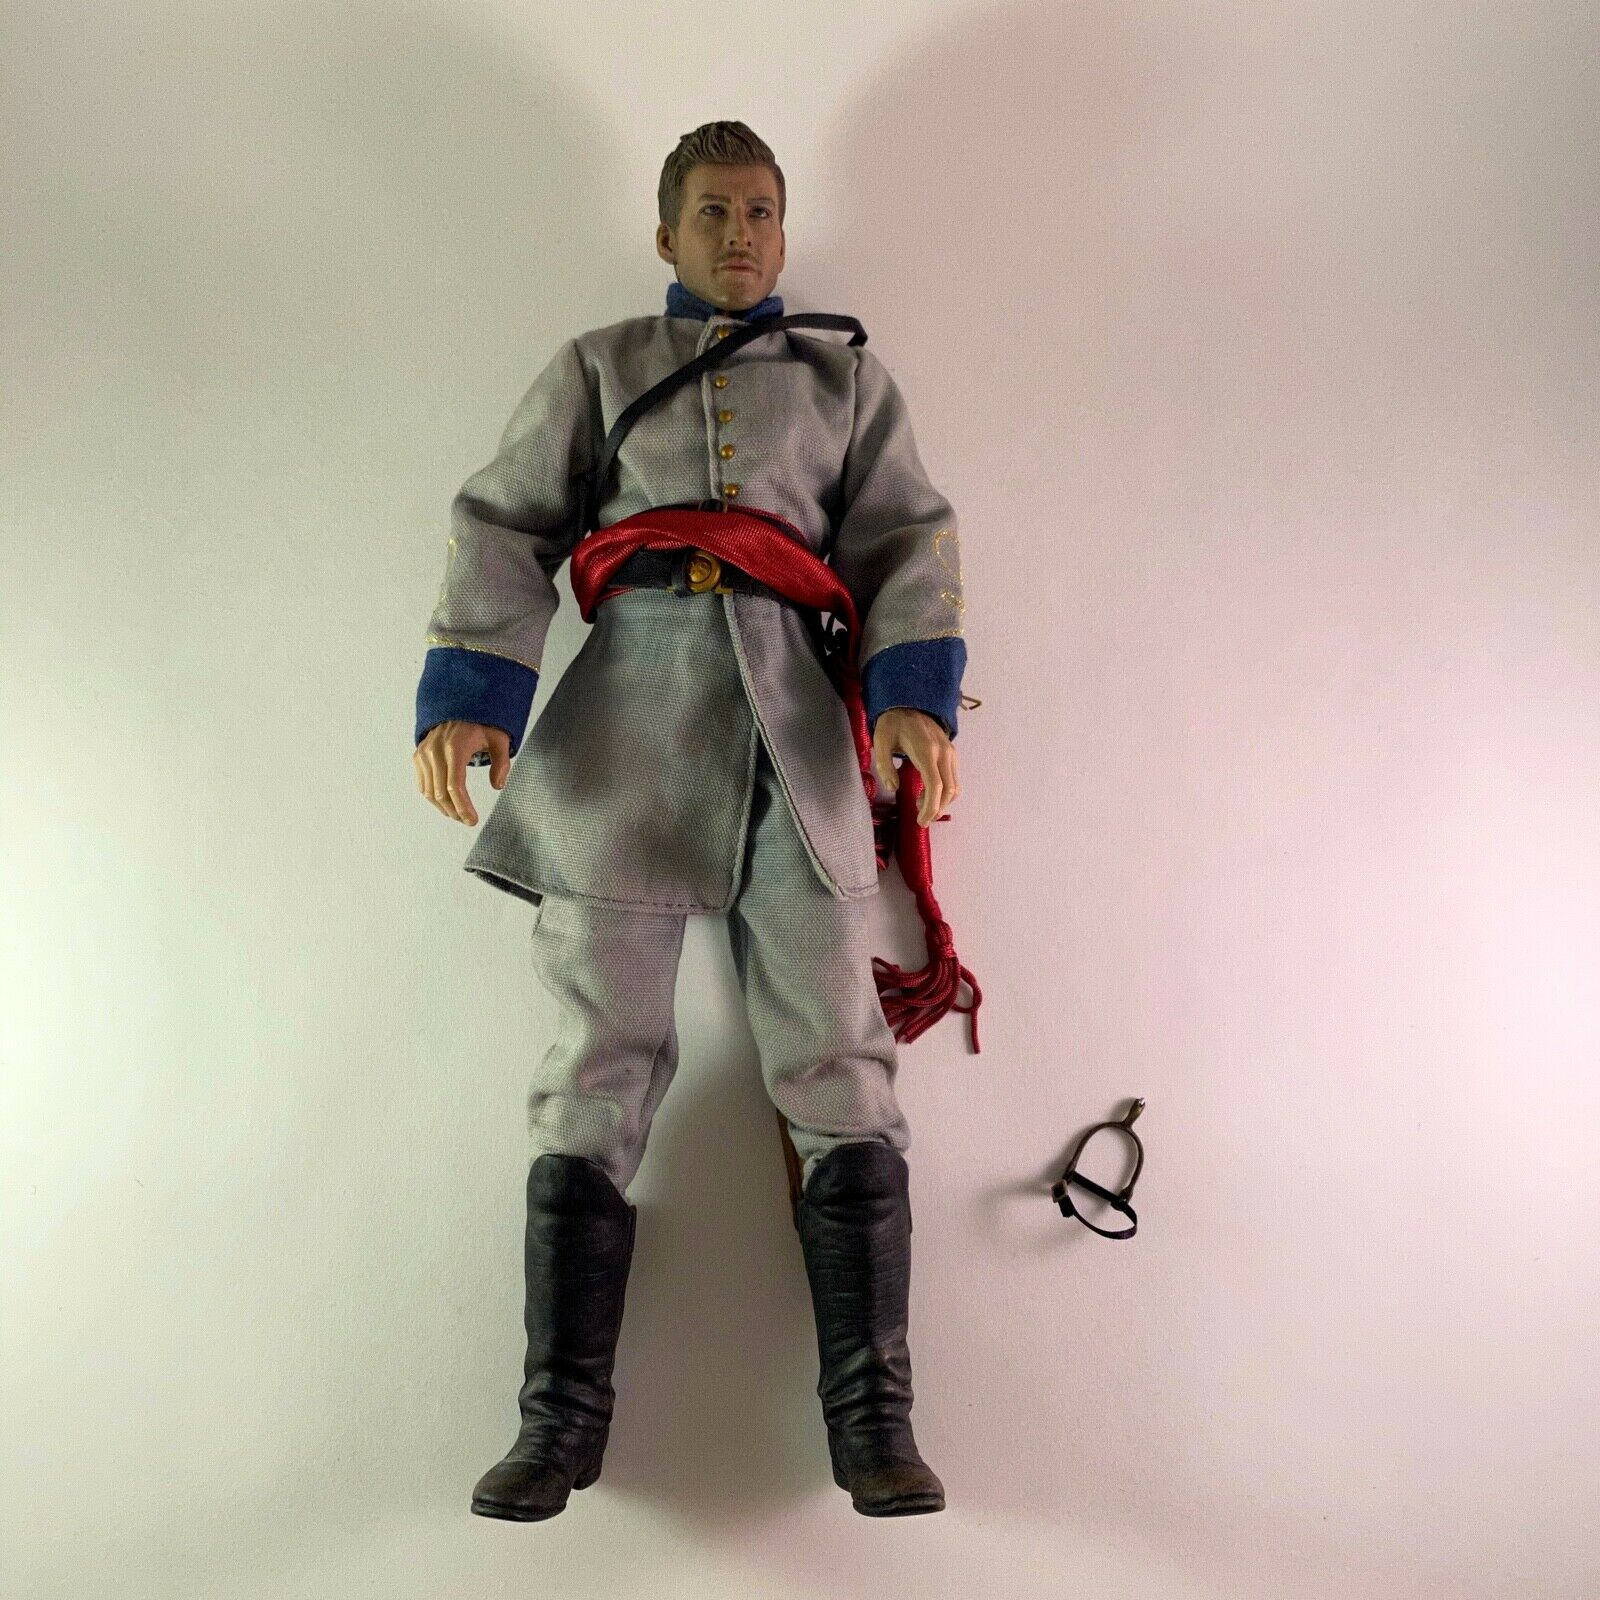 Hot Toys 1/6 Male Action Figure 12'' Confederate Soldier on eBay thumbnail